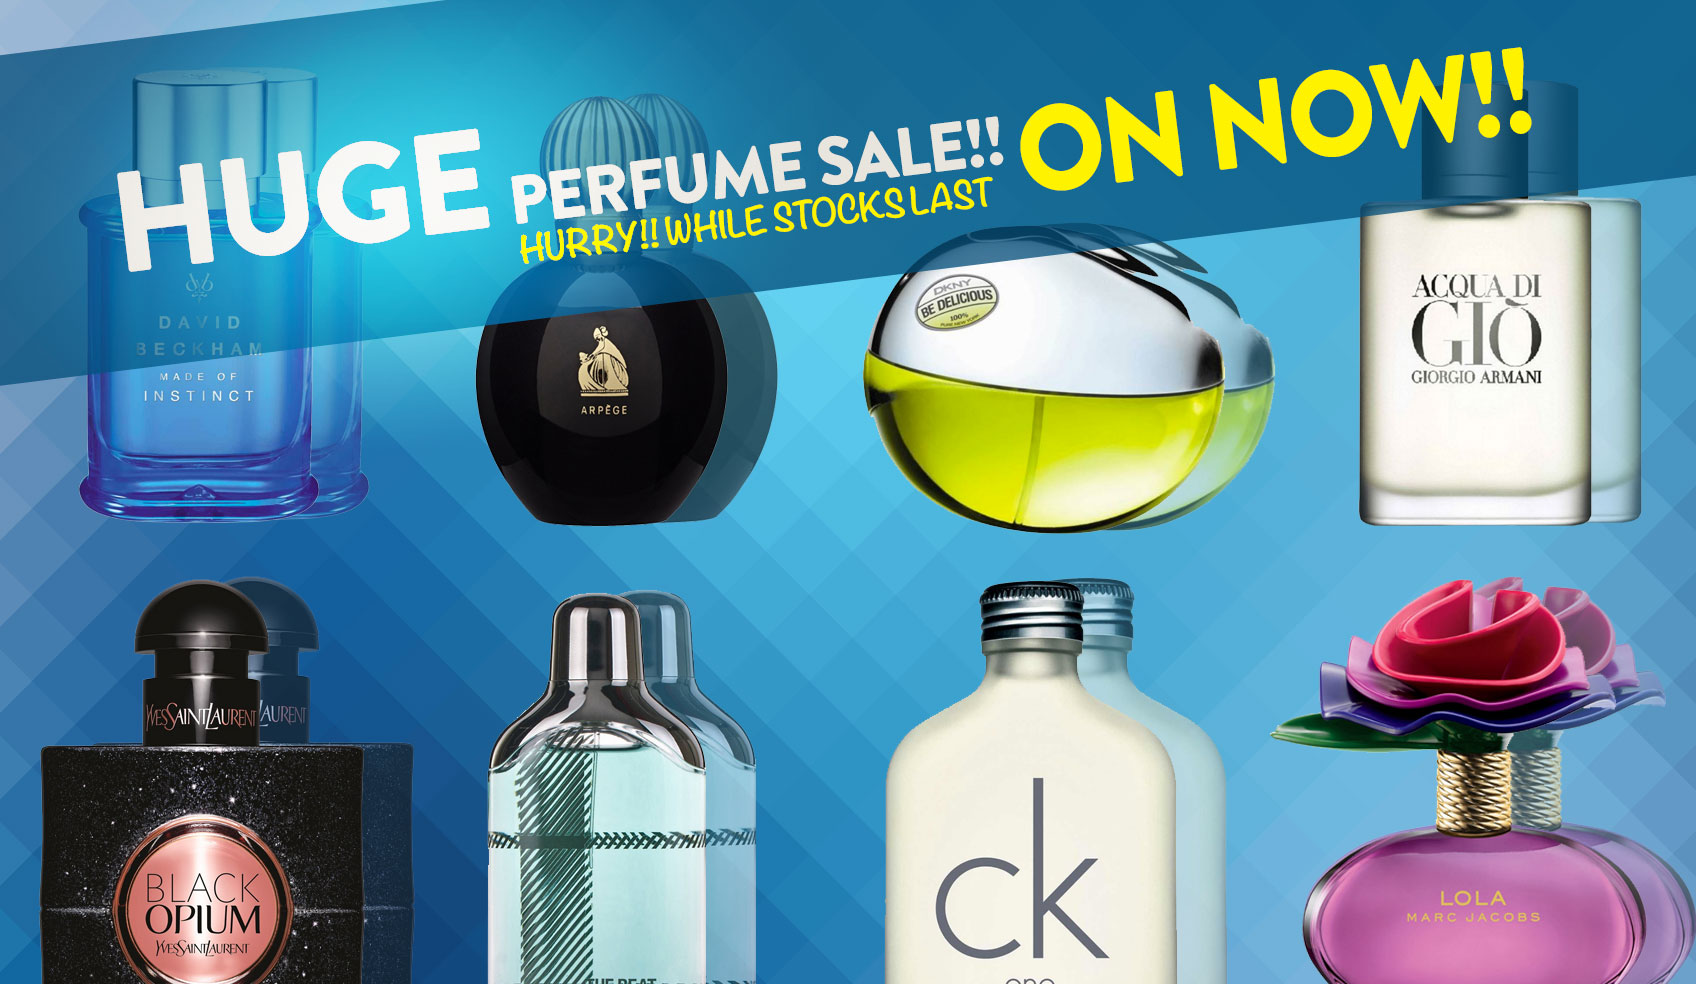 Perfume Sale on Now